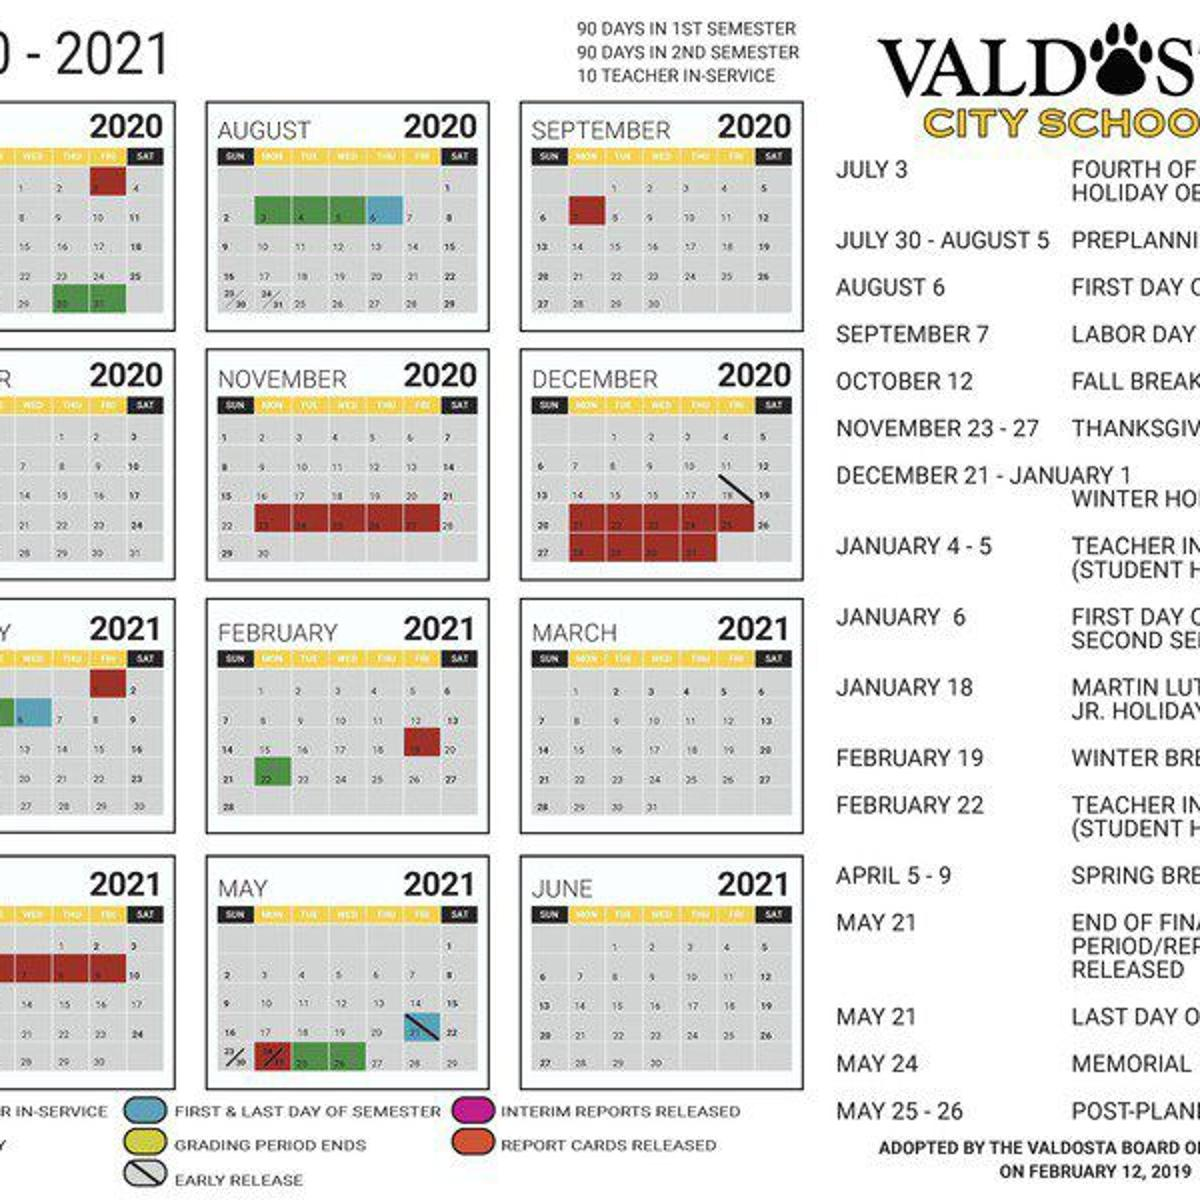 Troup County School Calendar 2020-21 City school year calendars approved | Local News